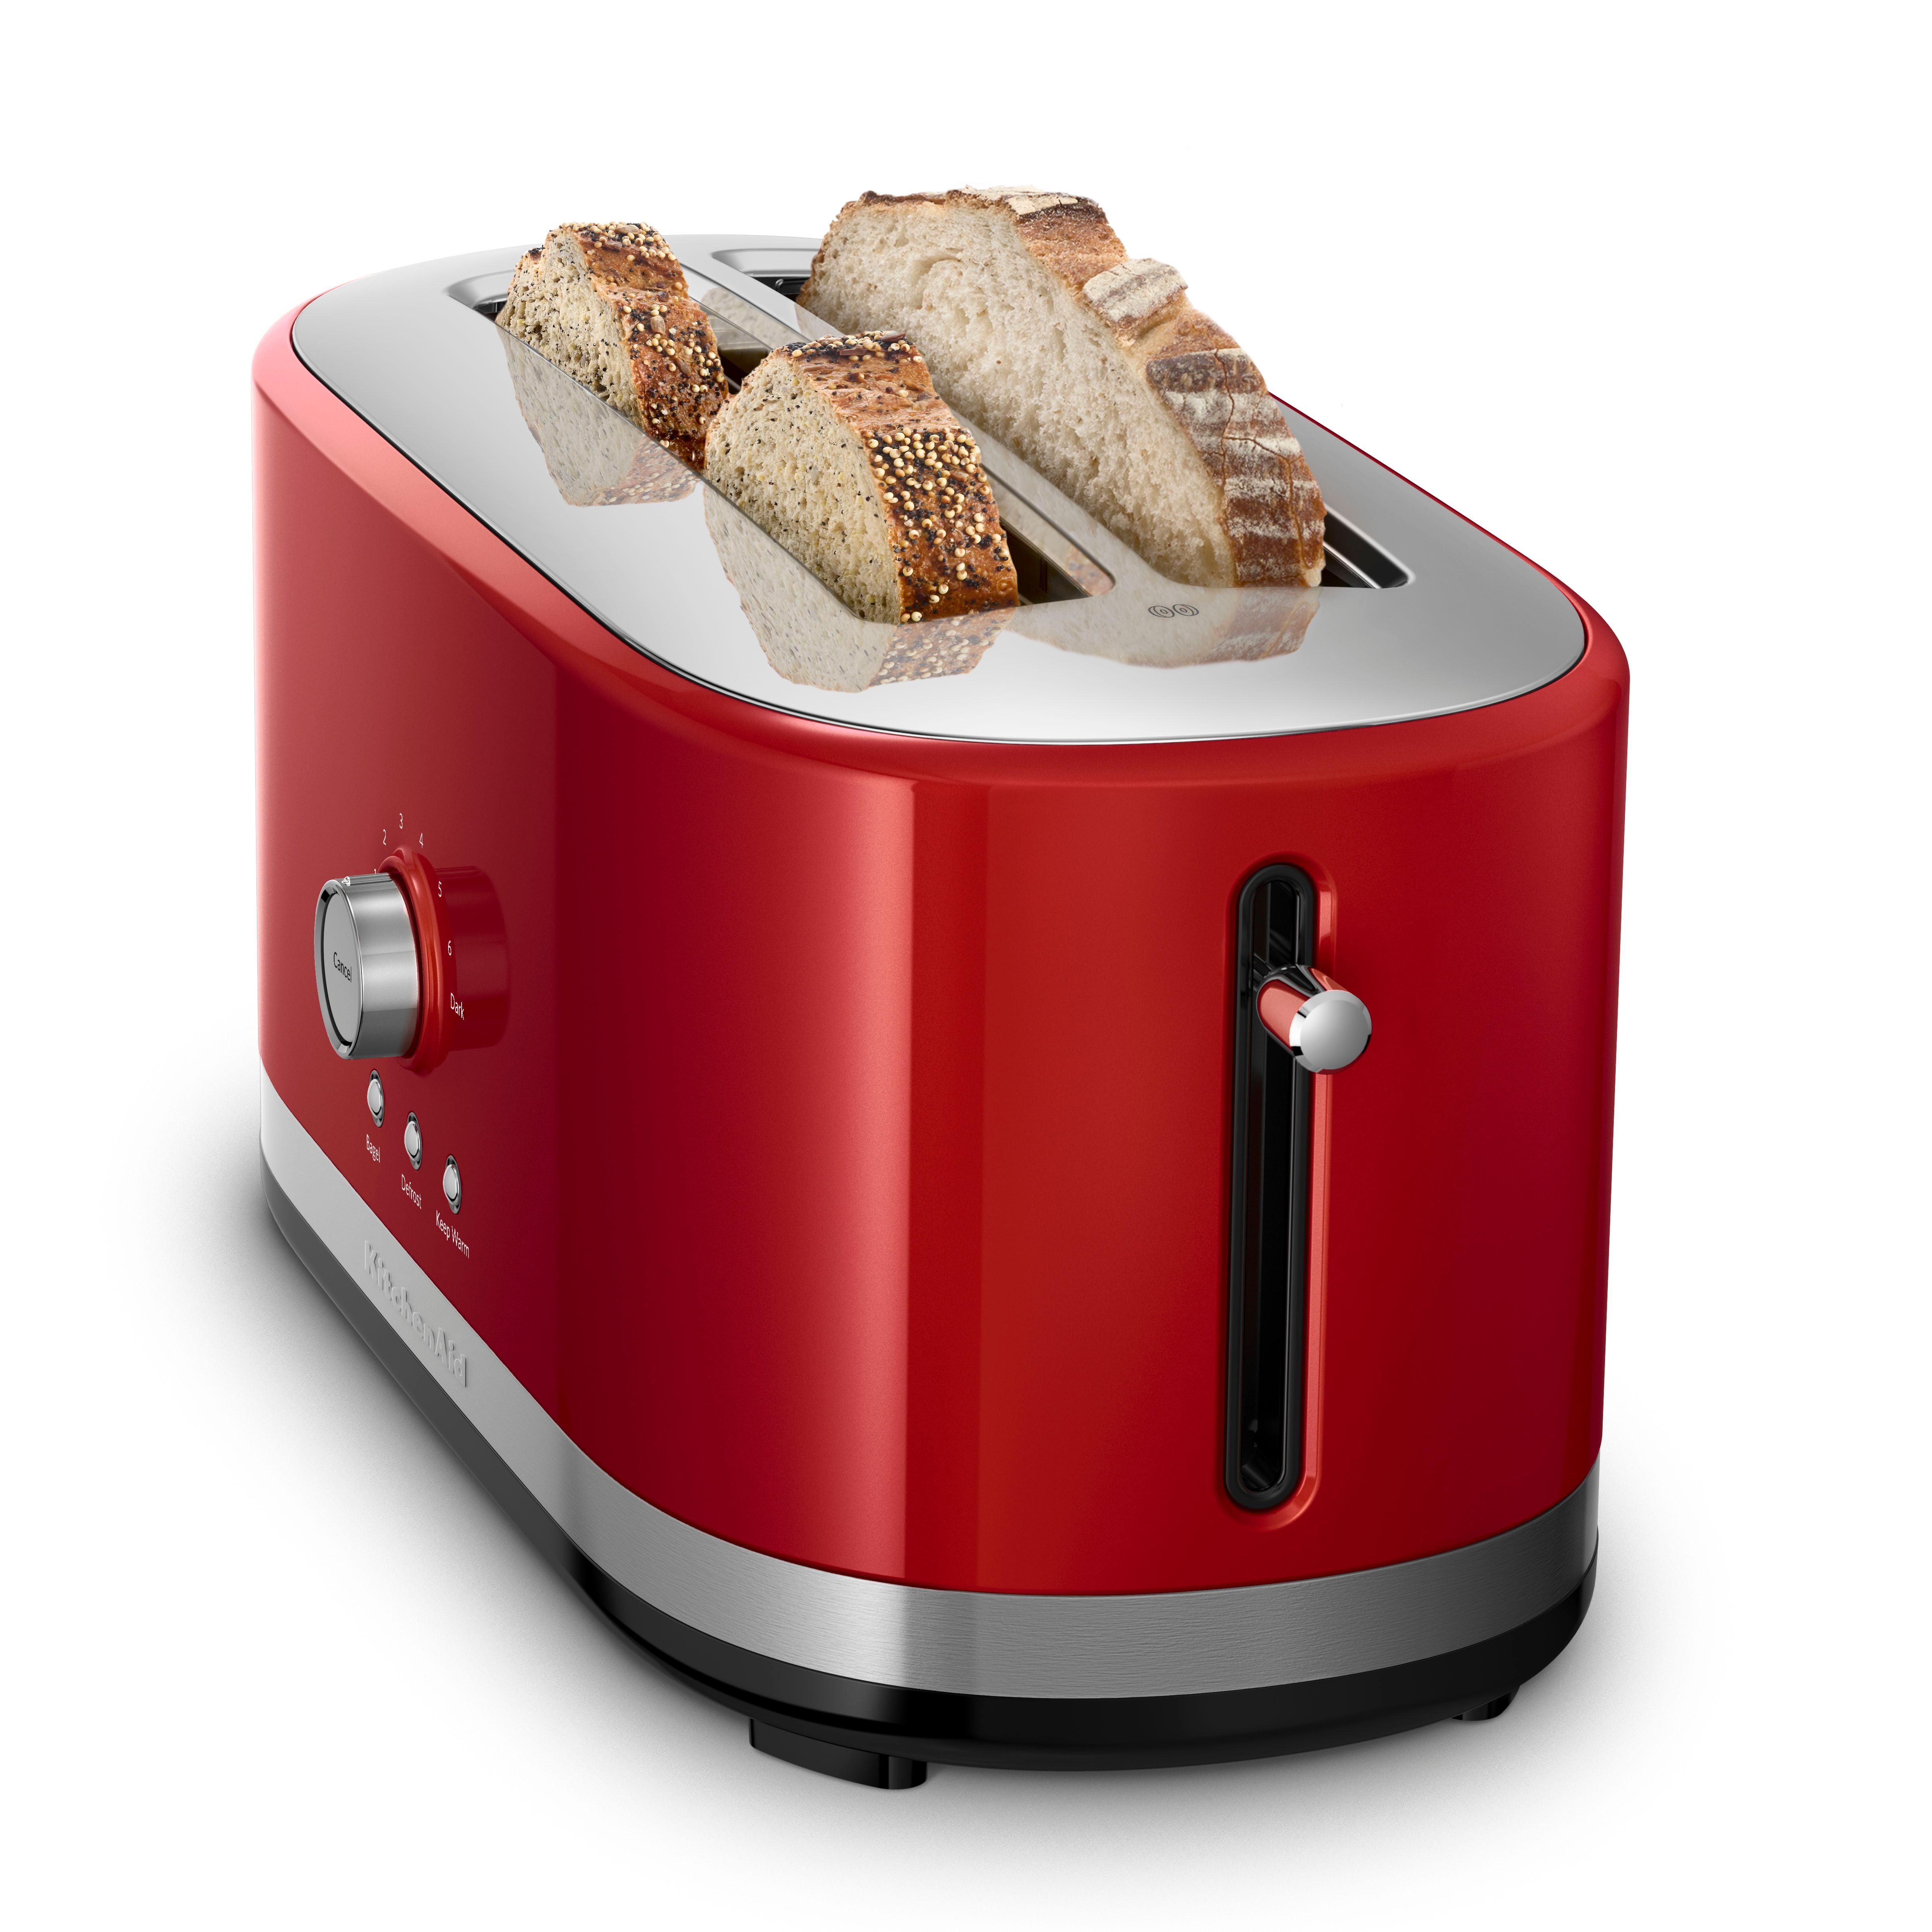 Kitchenaid Kmt2116er 2 Slice Slot Toaster With High Lift Lever Empire Red